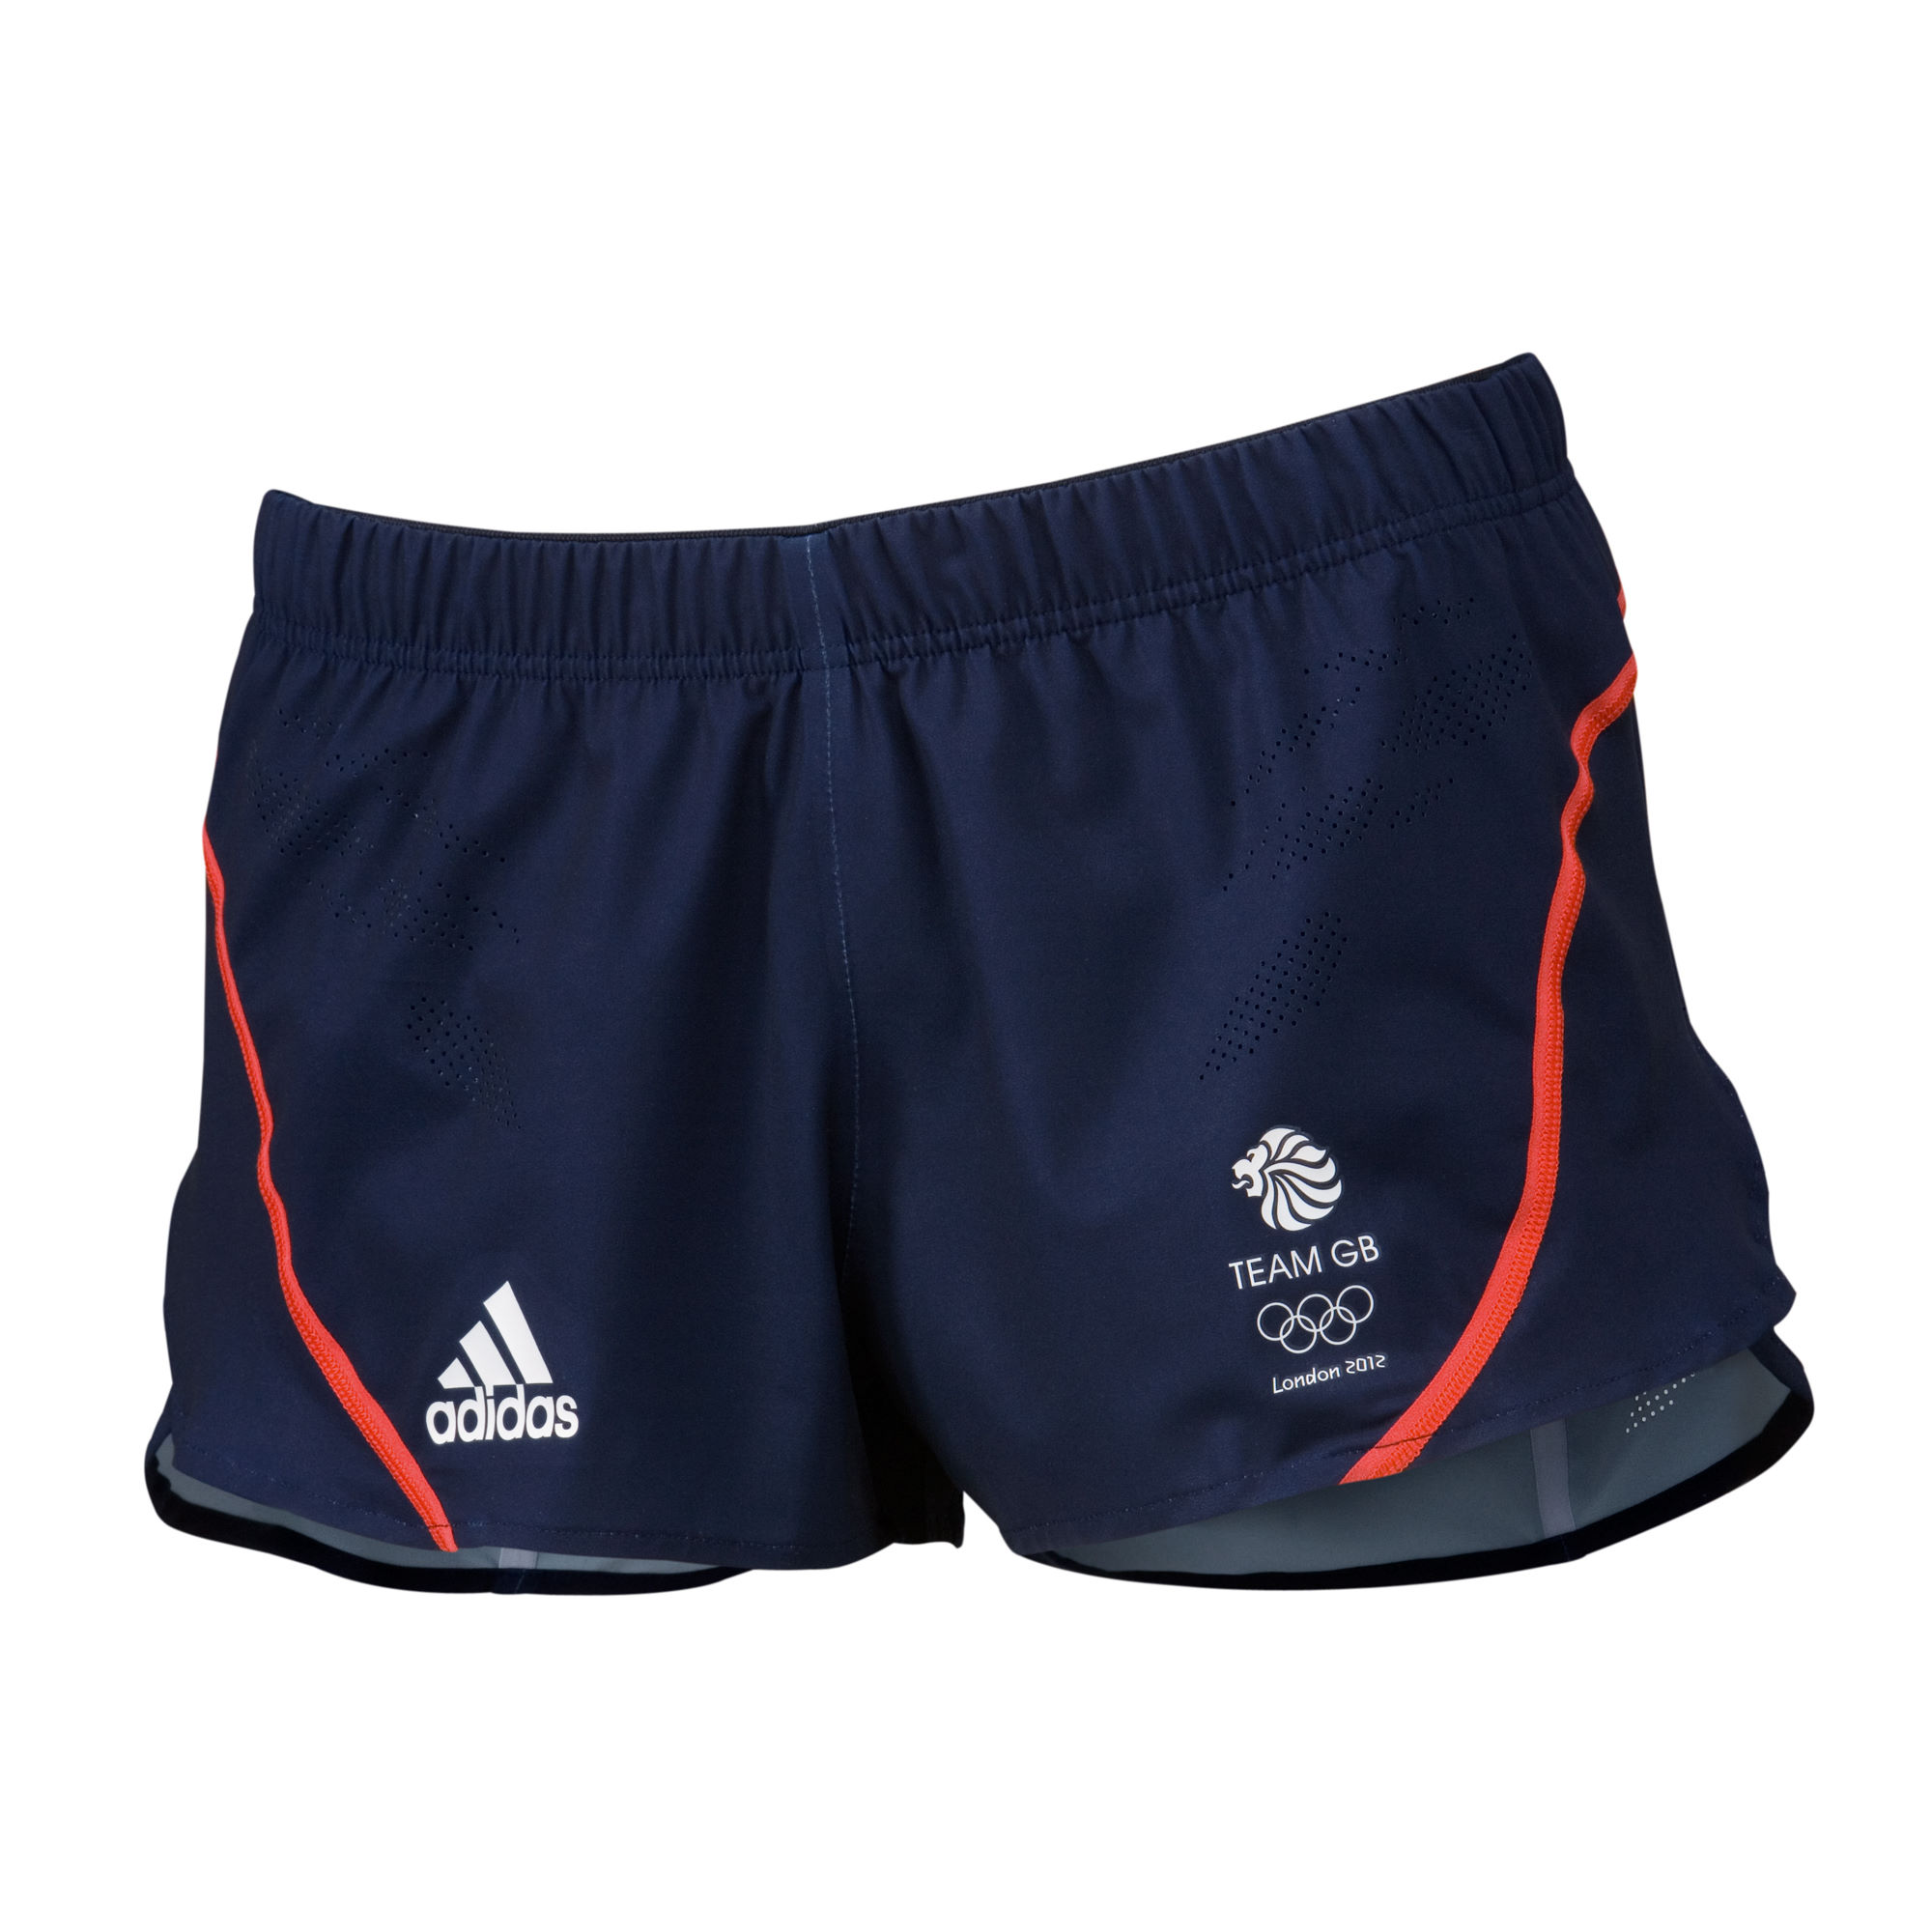 Shorts de running  Adidas  London Olympics 2012 Team GB Split Short